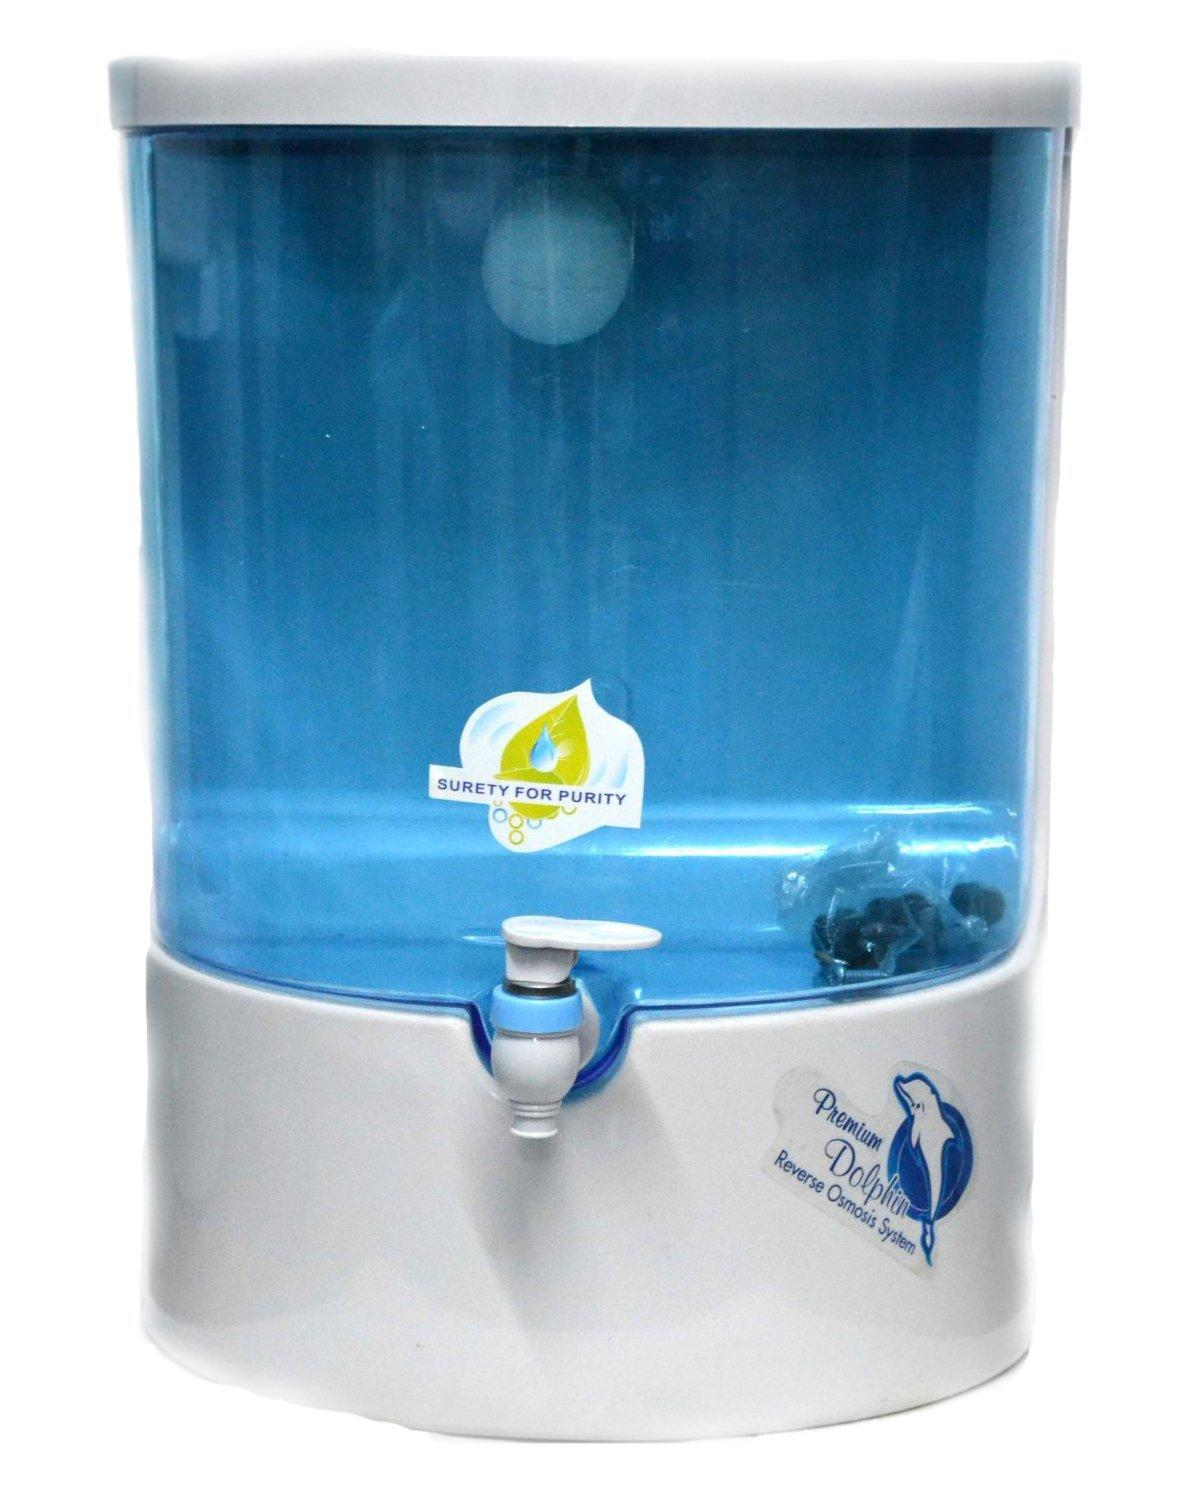 Dolphin 10 Liter Ro Water Purifier Price In India Coupons And Dispenser Pureit Classic 9 Cd Specifications Payback